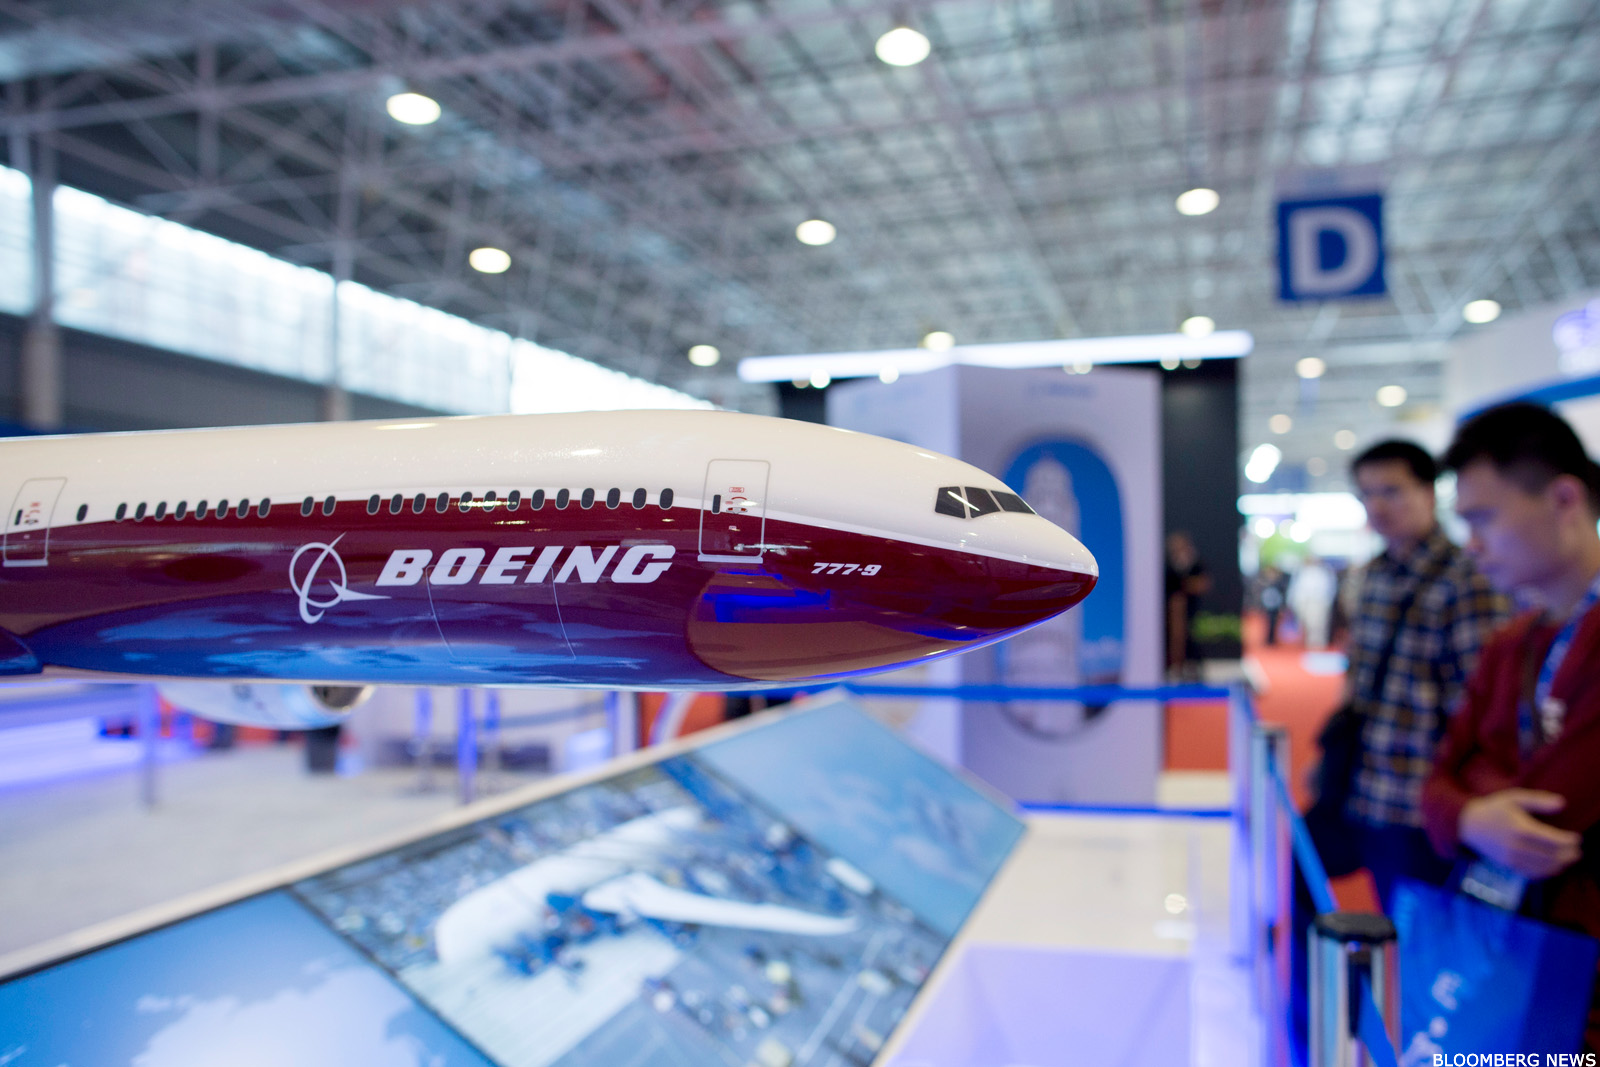 Boeing going to mars cramers top takeaways thestreet buycottarizona Image collections